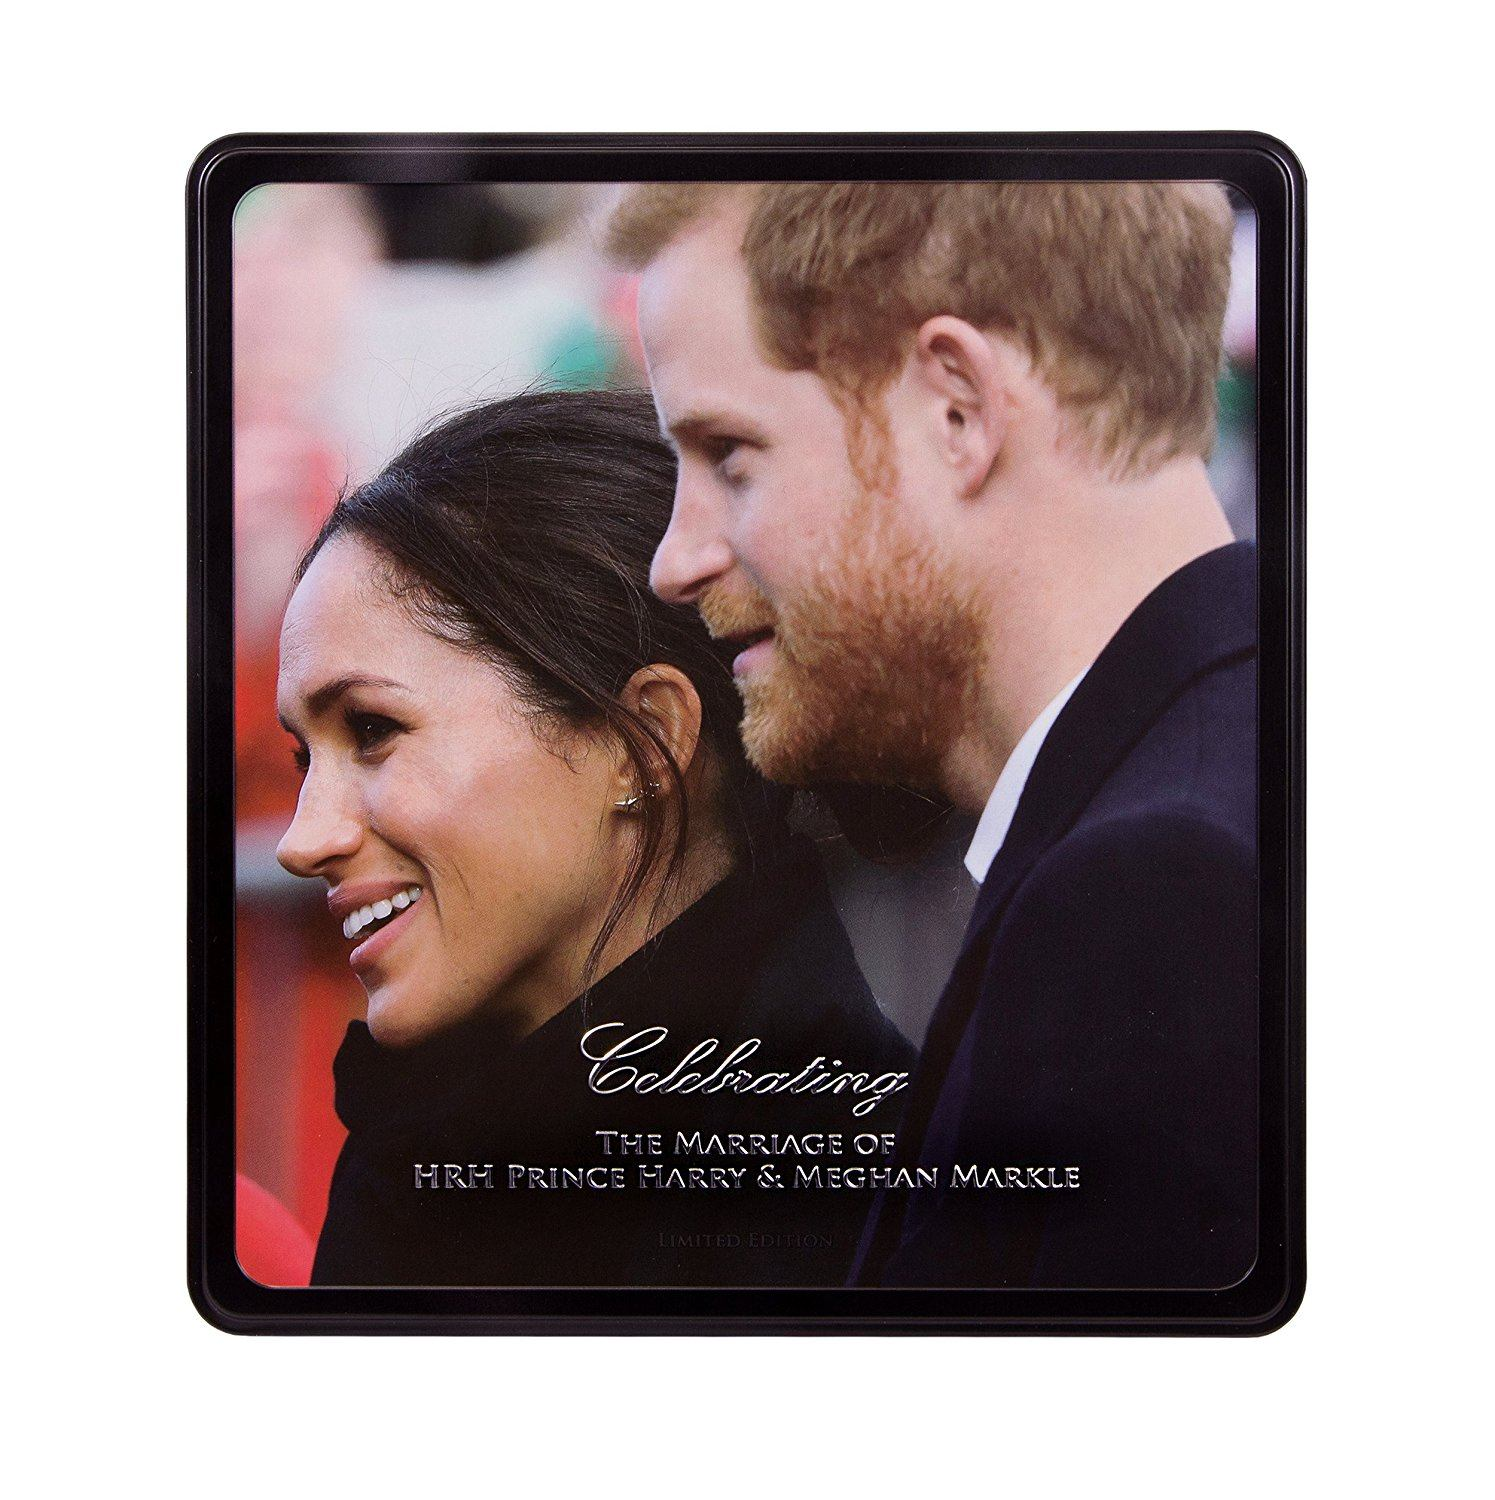 Walker's royal wedding tin